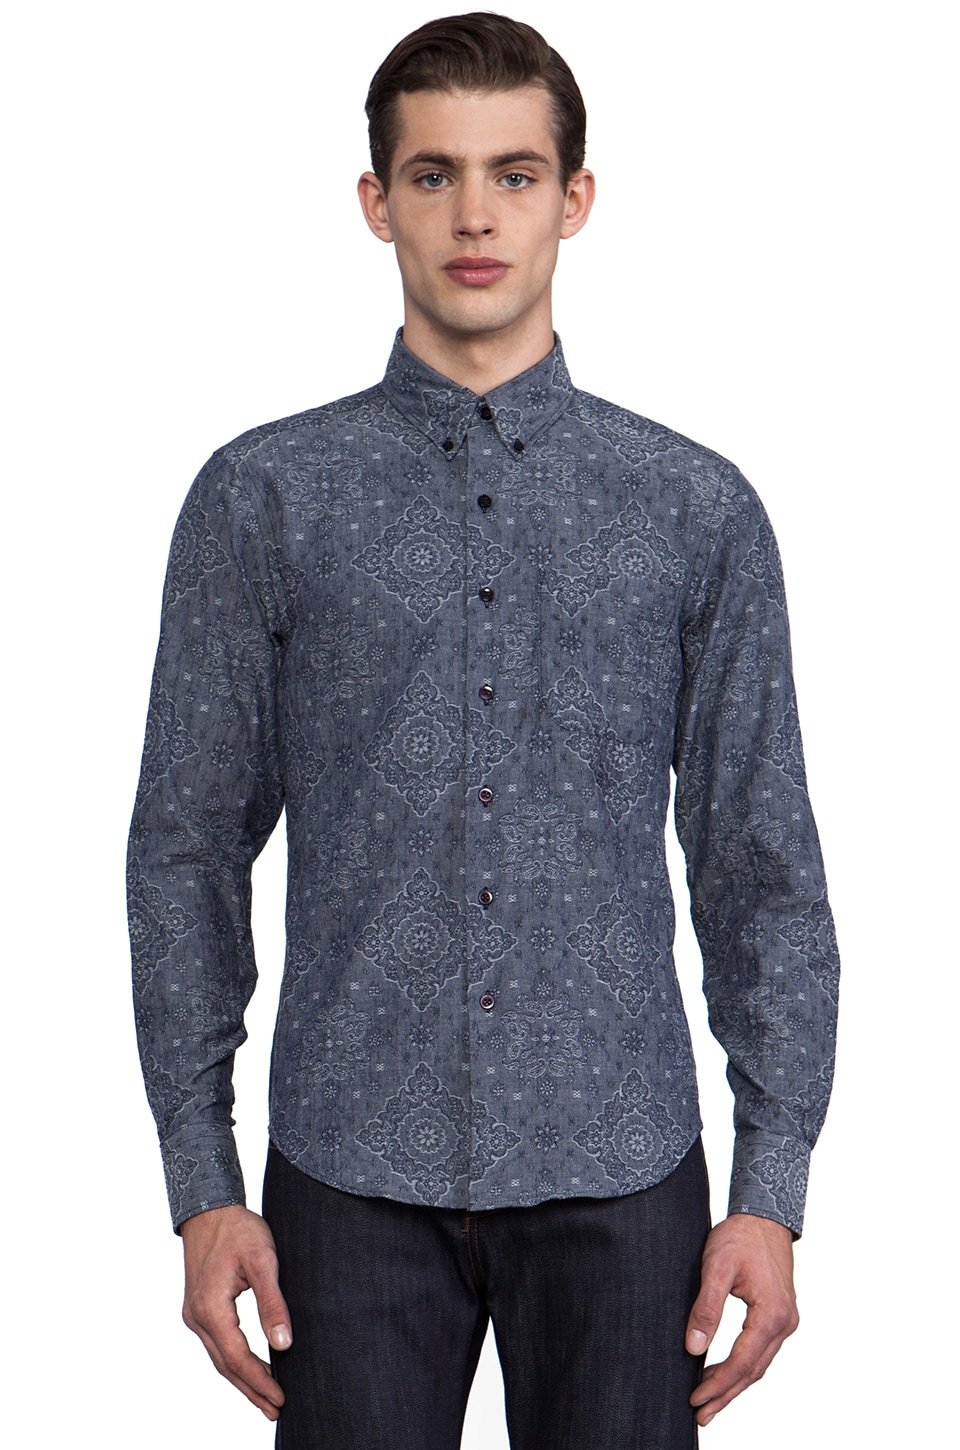 Naked & Famous Denim Regular Shirt Paisley Jacquard in Indigo